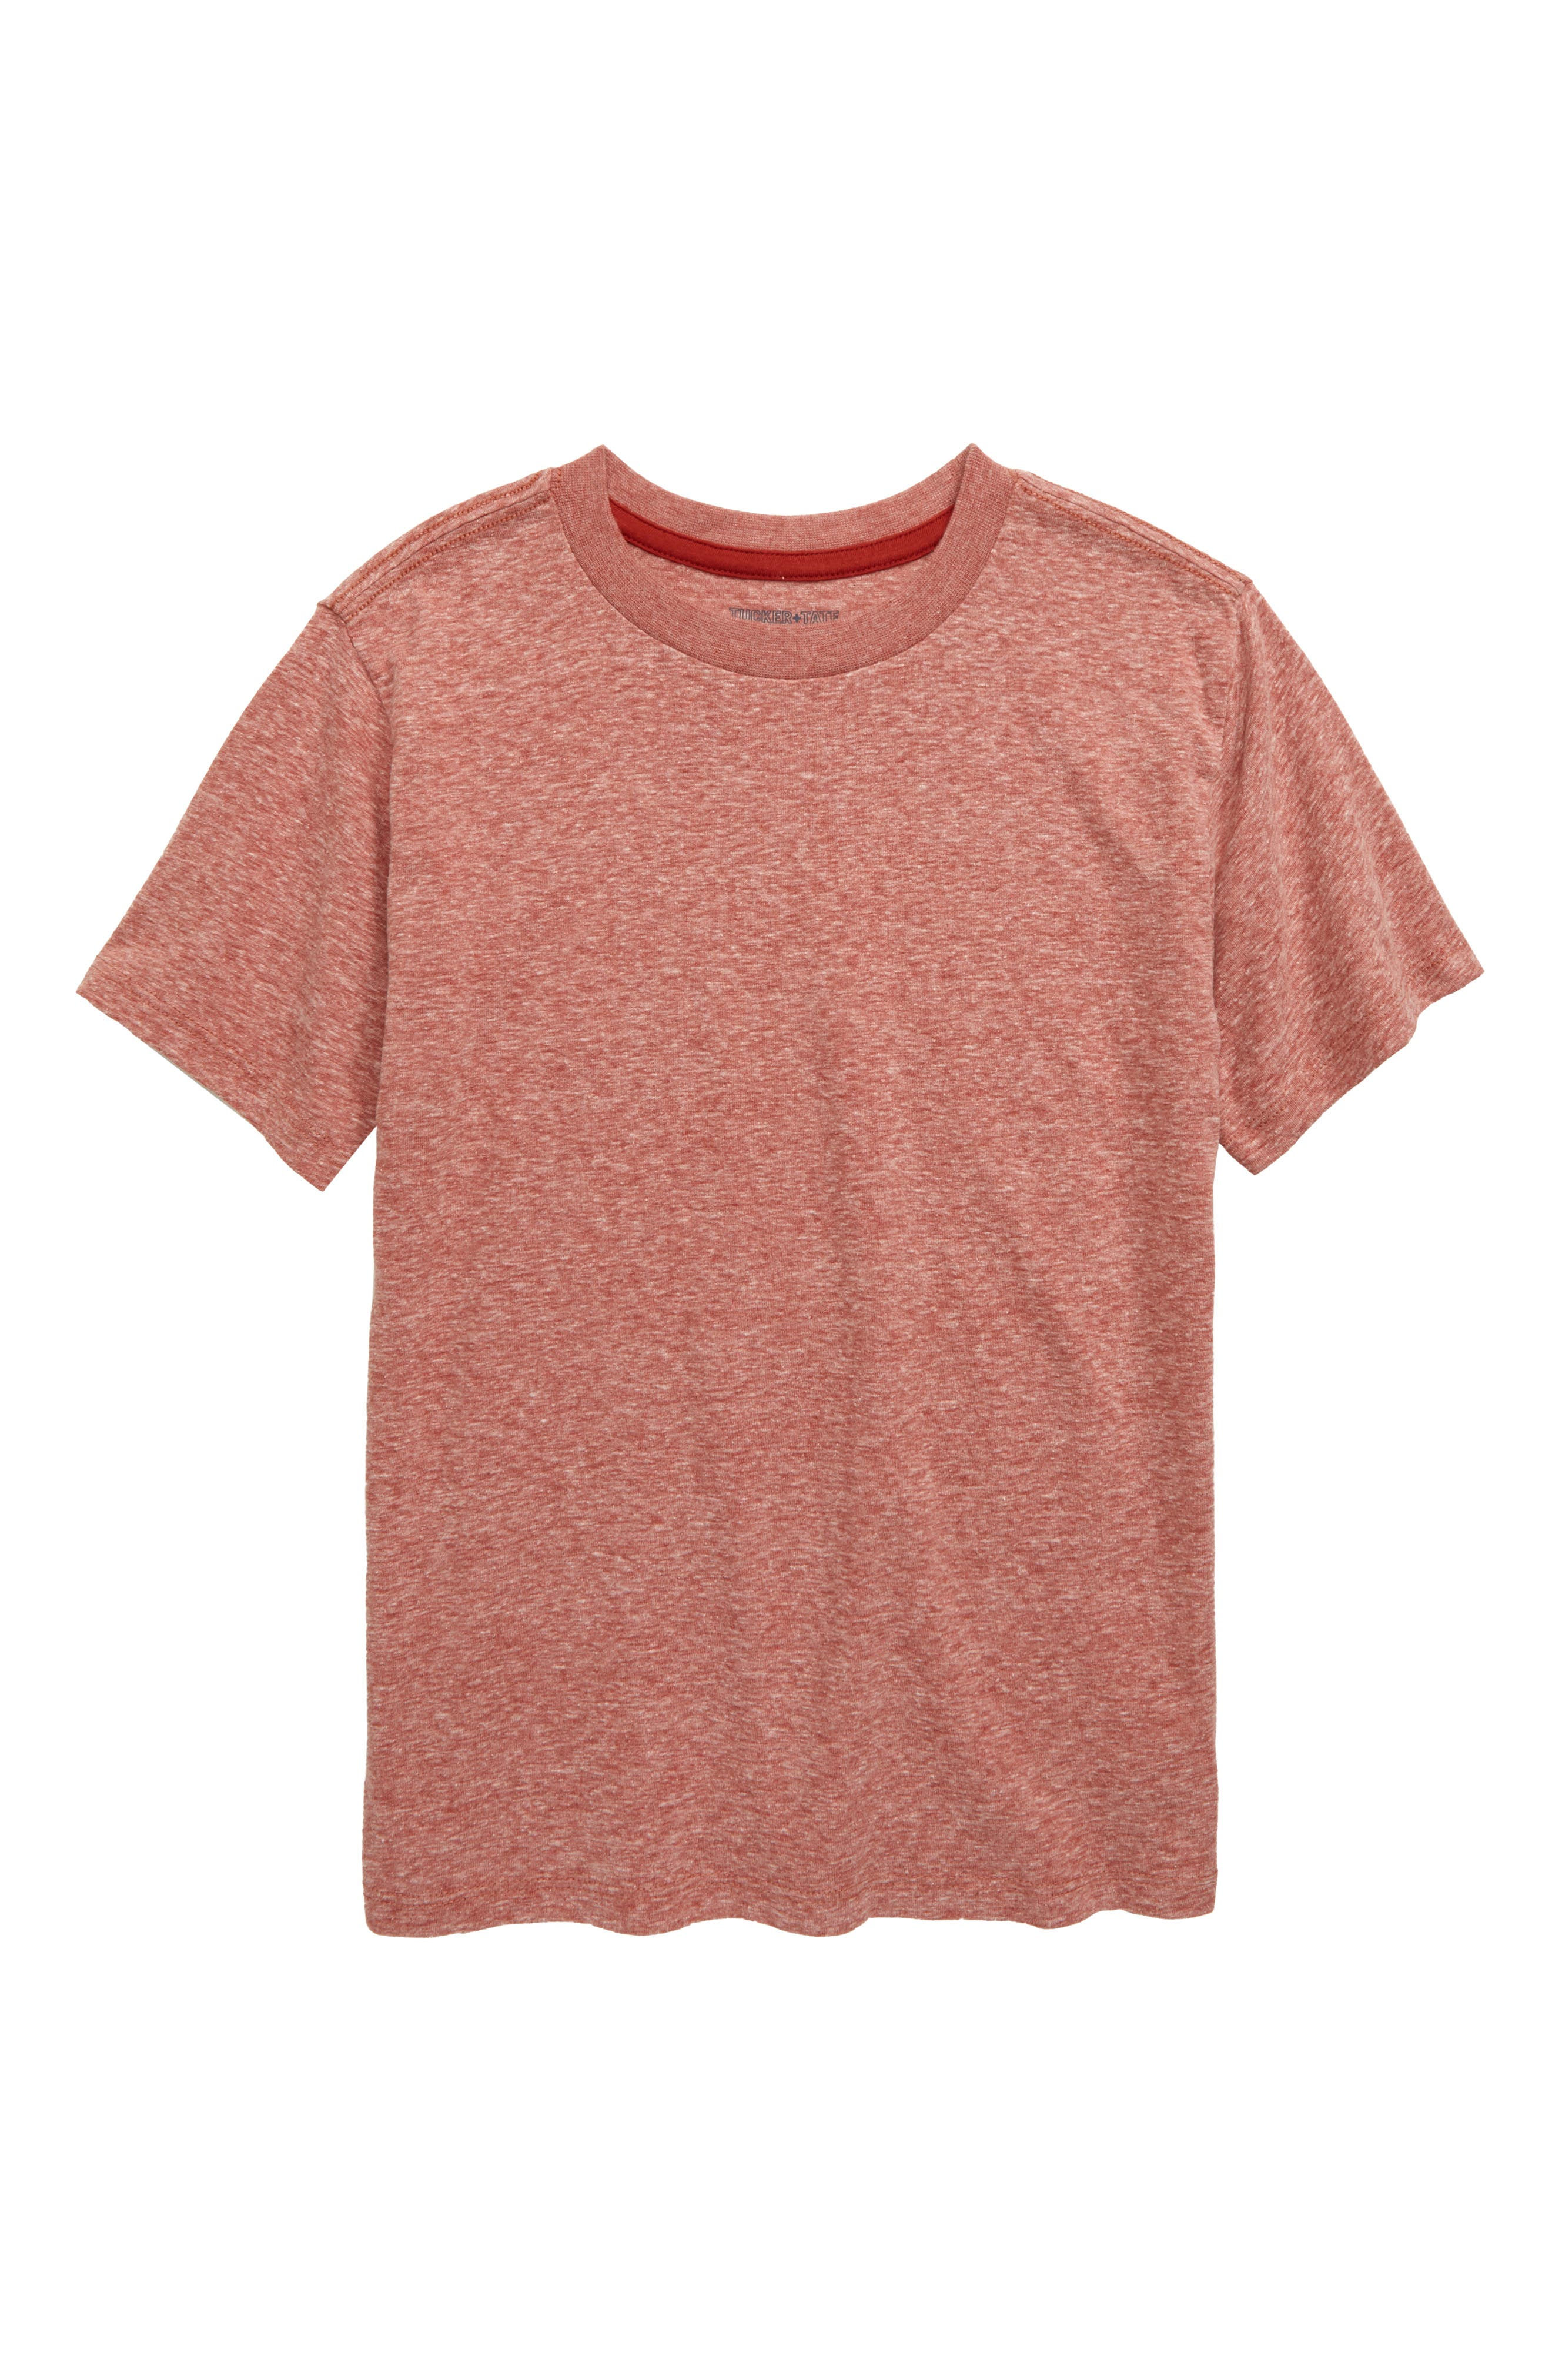 This everyday essential is spruced up in an ultrasoft, heathered cotton blend. Style Name: Tucker + Tate Kids\\\' Essential Heathered T-Shirt (Little Boy & Big Boy). Style Number: 5939513. Available in stores.